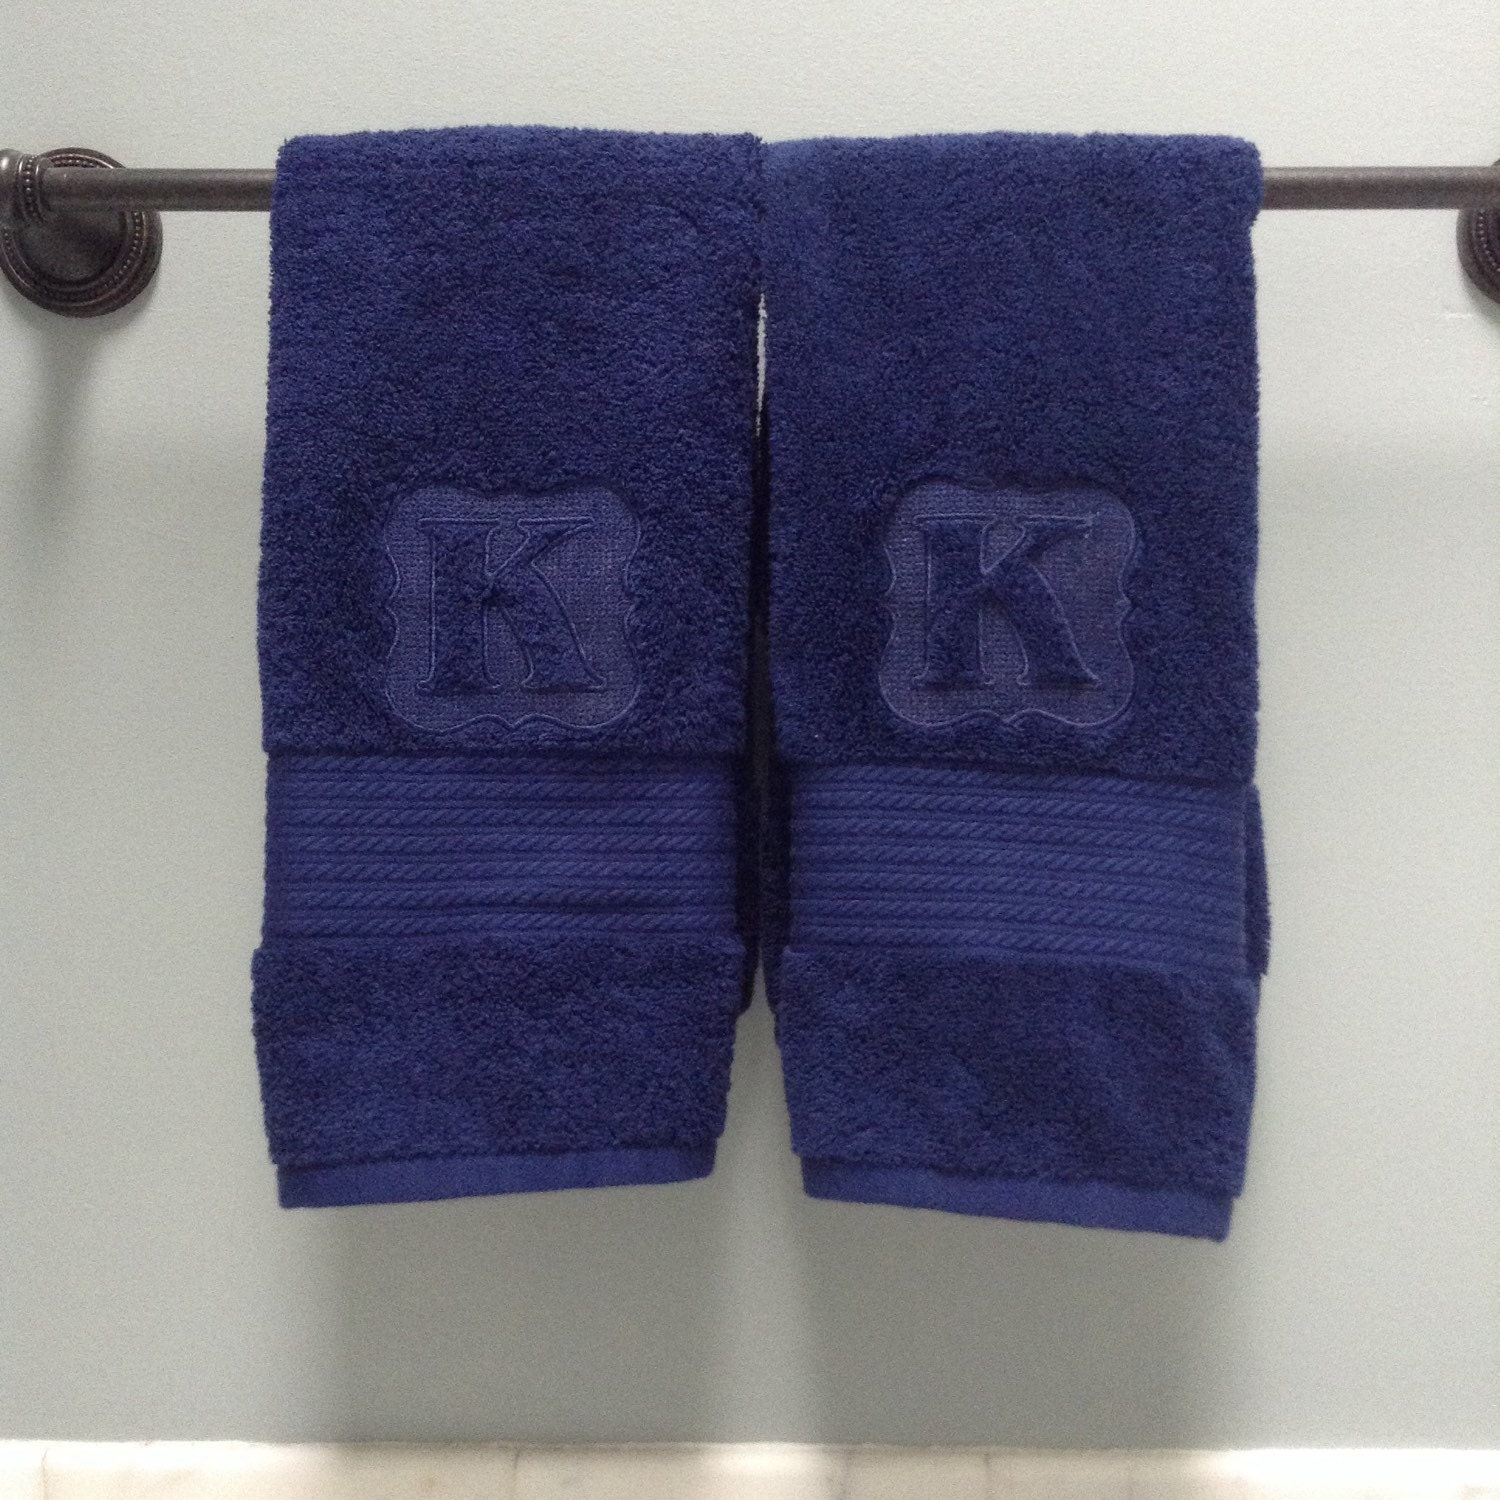 Embroidered / Embossed Initial Hand Towels